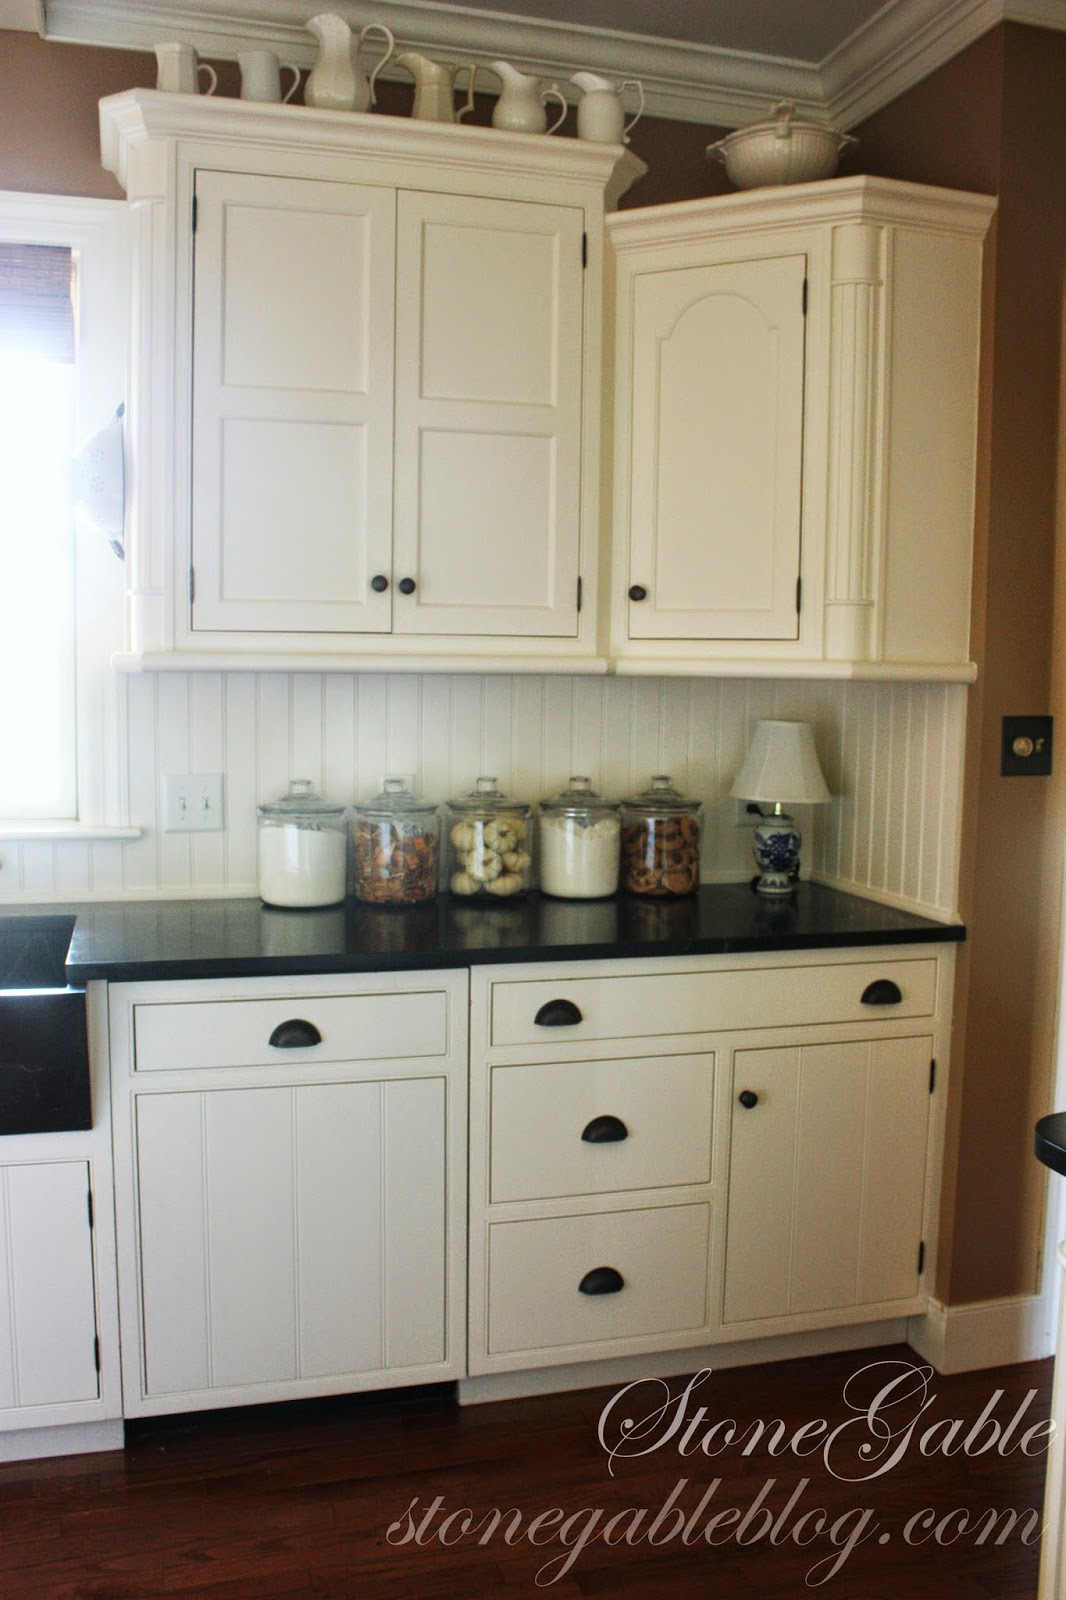 10 elements of farmhouse kitchen cheap white kitchen cabinets 10 ELEMENTS OF A FARMHOUSE KITCHEN